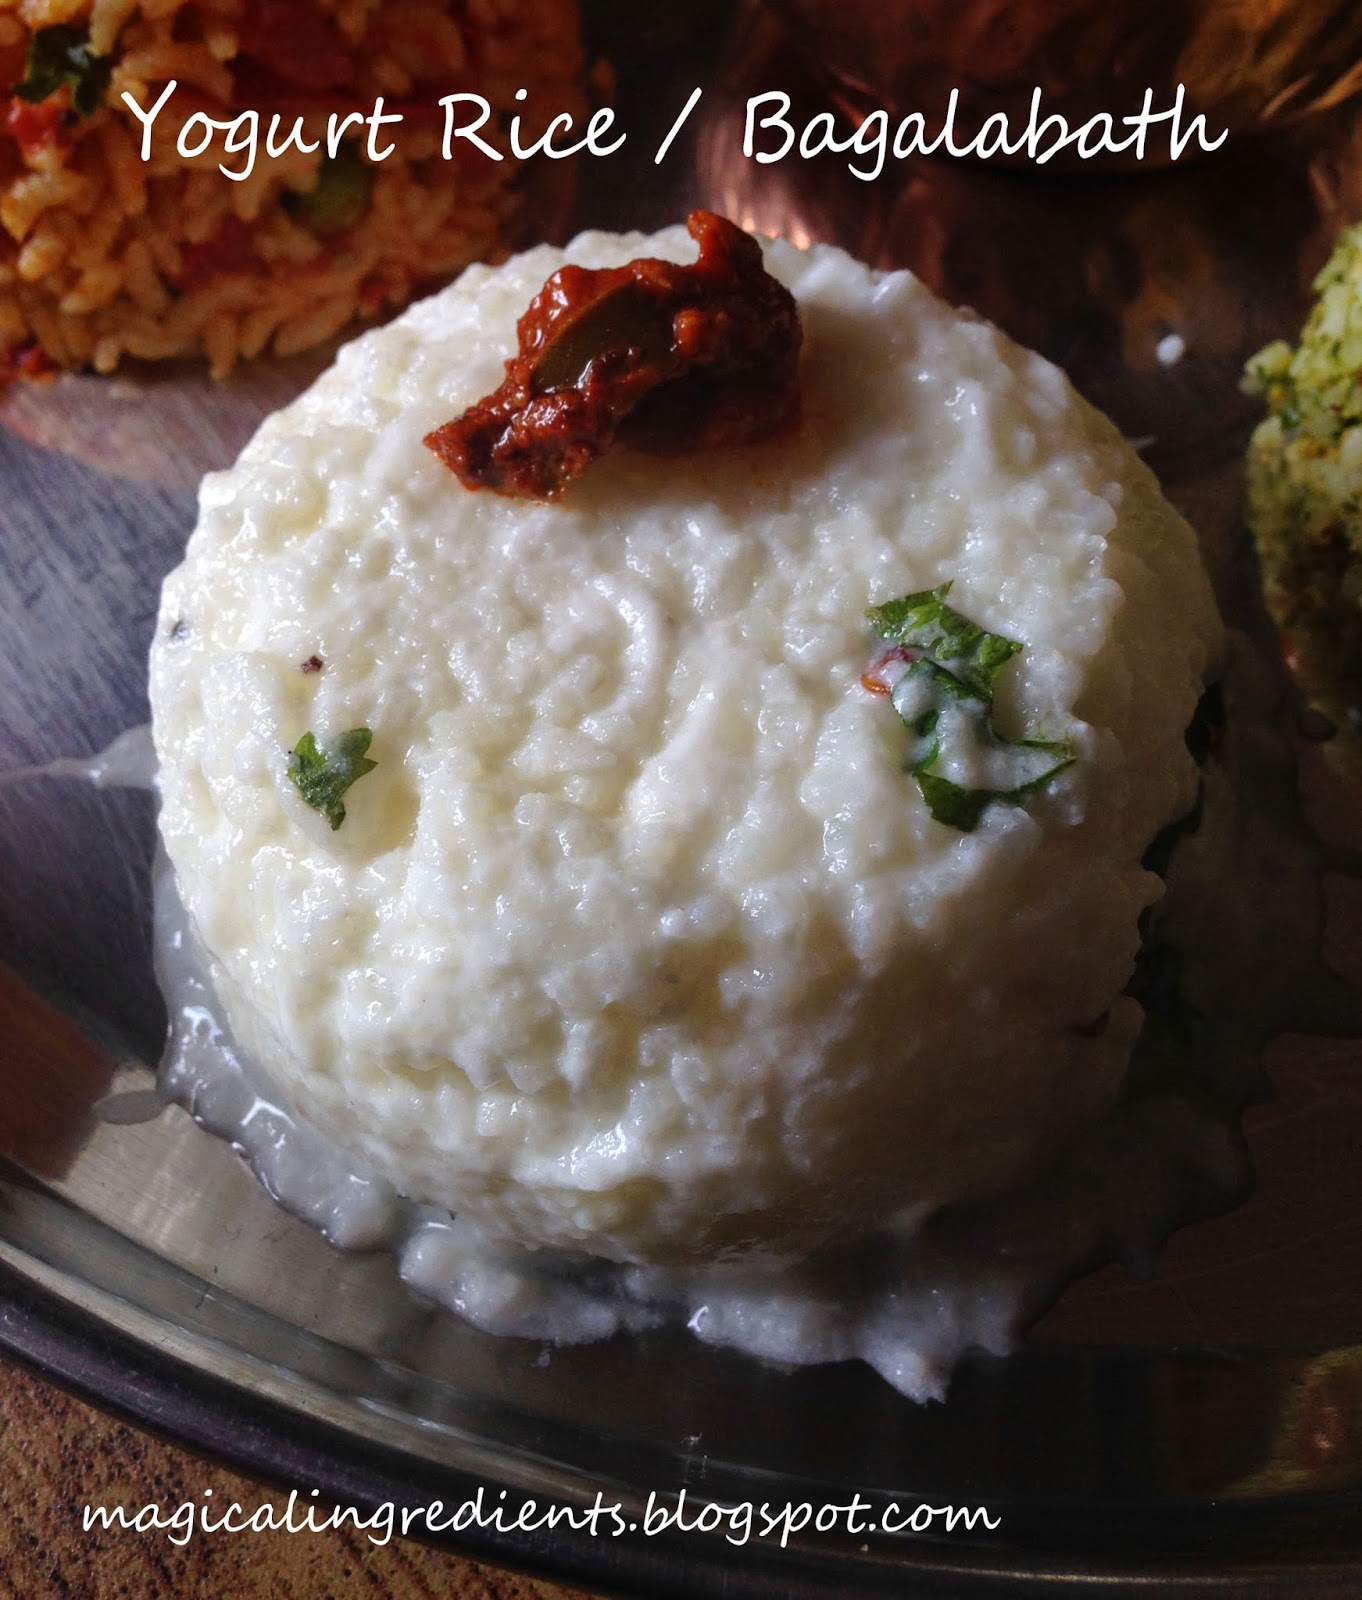 Here I Have The Recipe For Yogurt Rice It Is Very Simple To Make And You  Can Never Go Wrong Making Yogurt Rice It Has All The Goodness Of Yogurt  And Hence